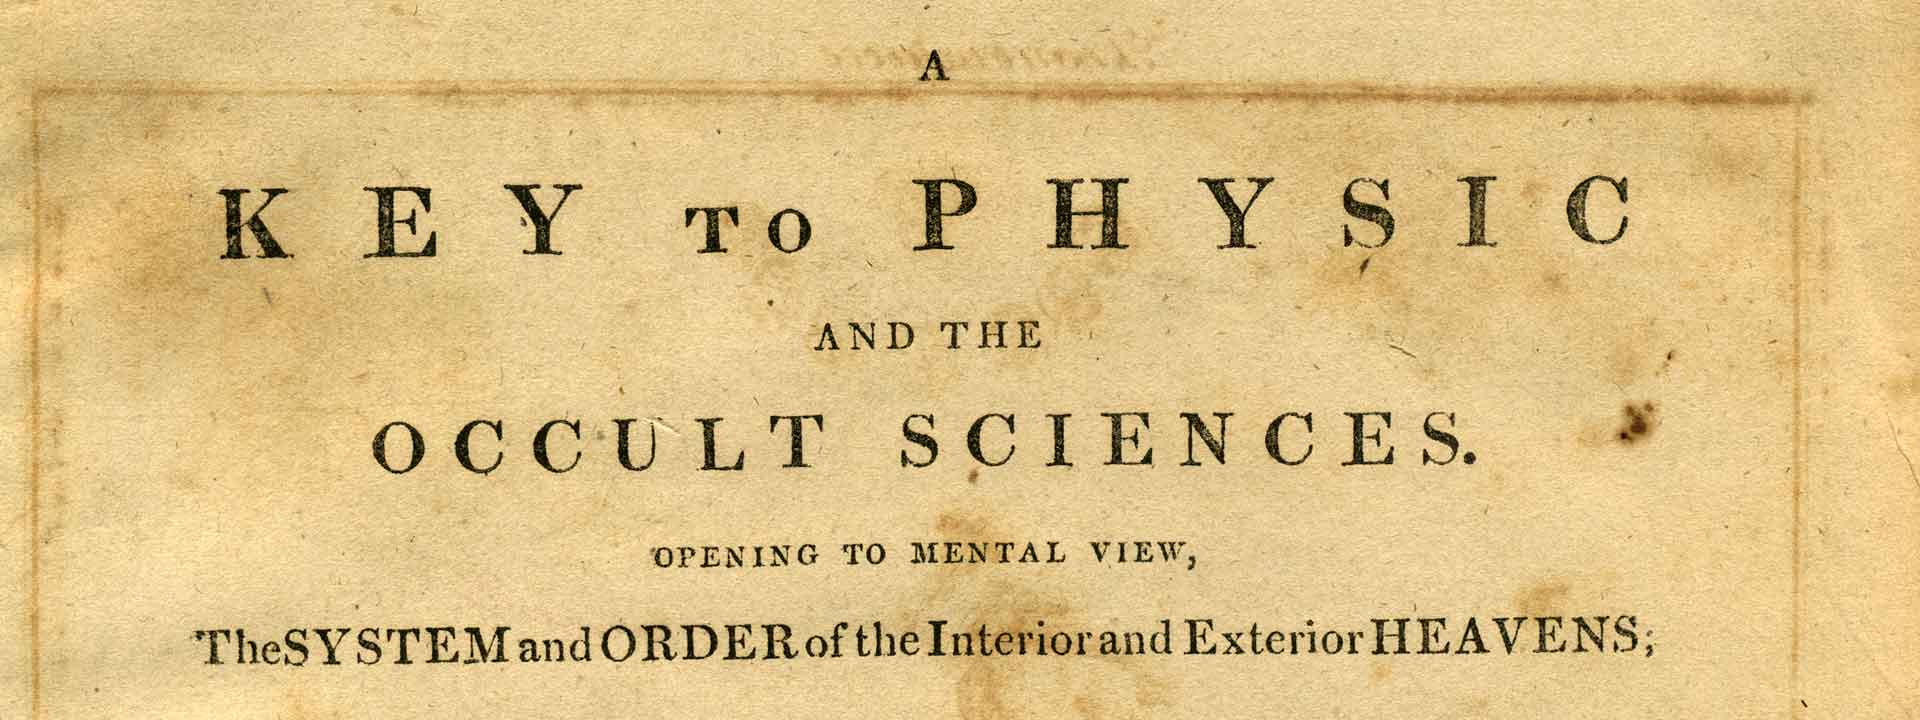 A Key to Physic and the Occult Sciences Title Page